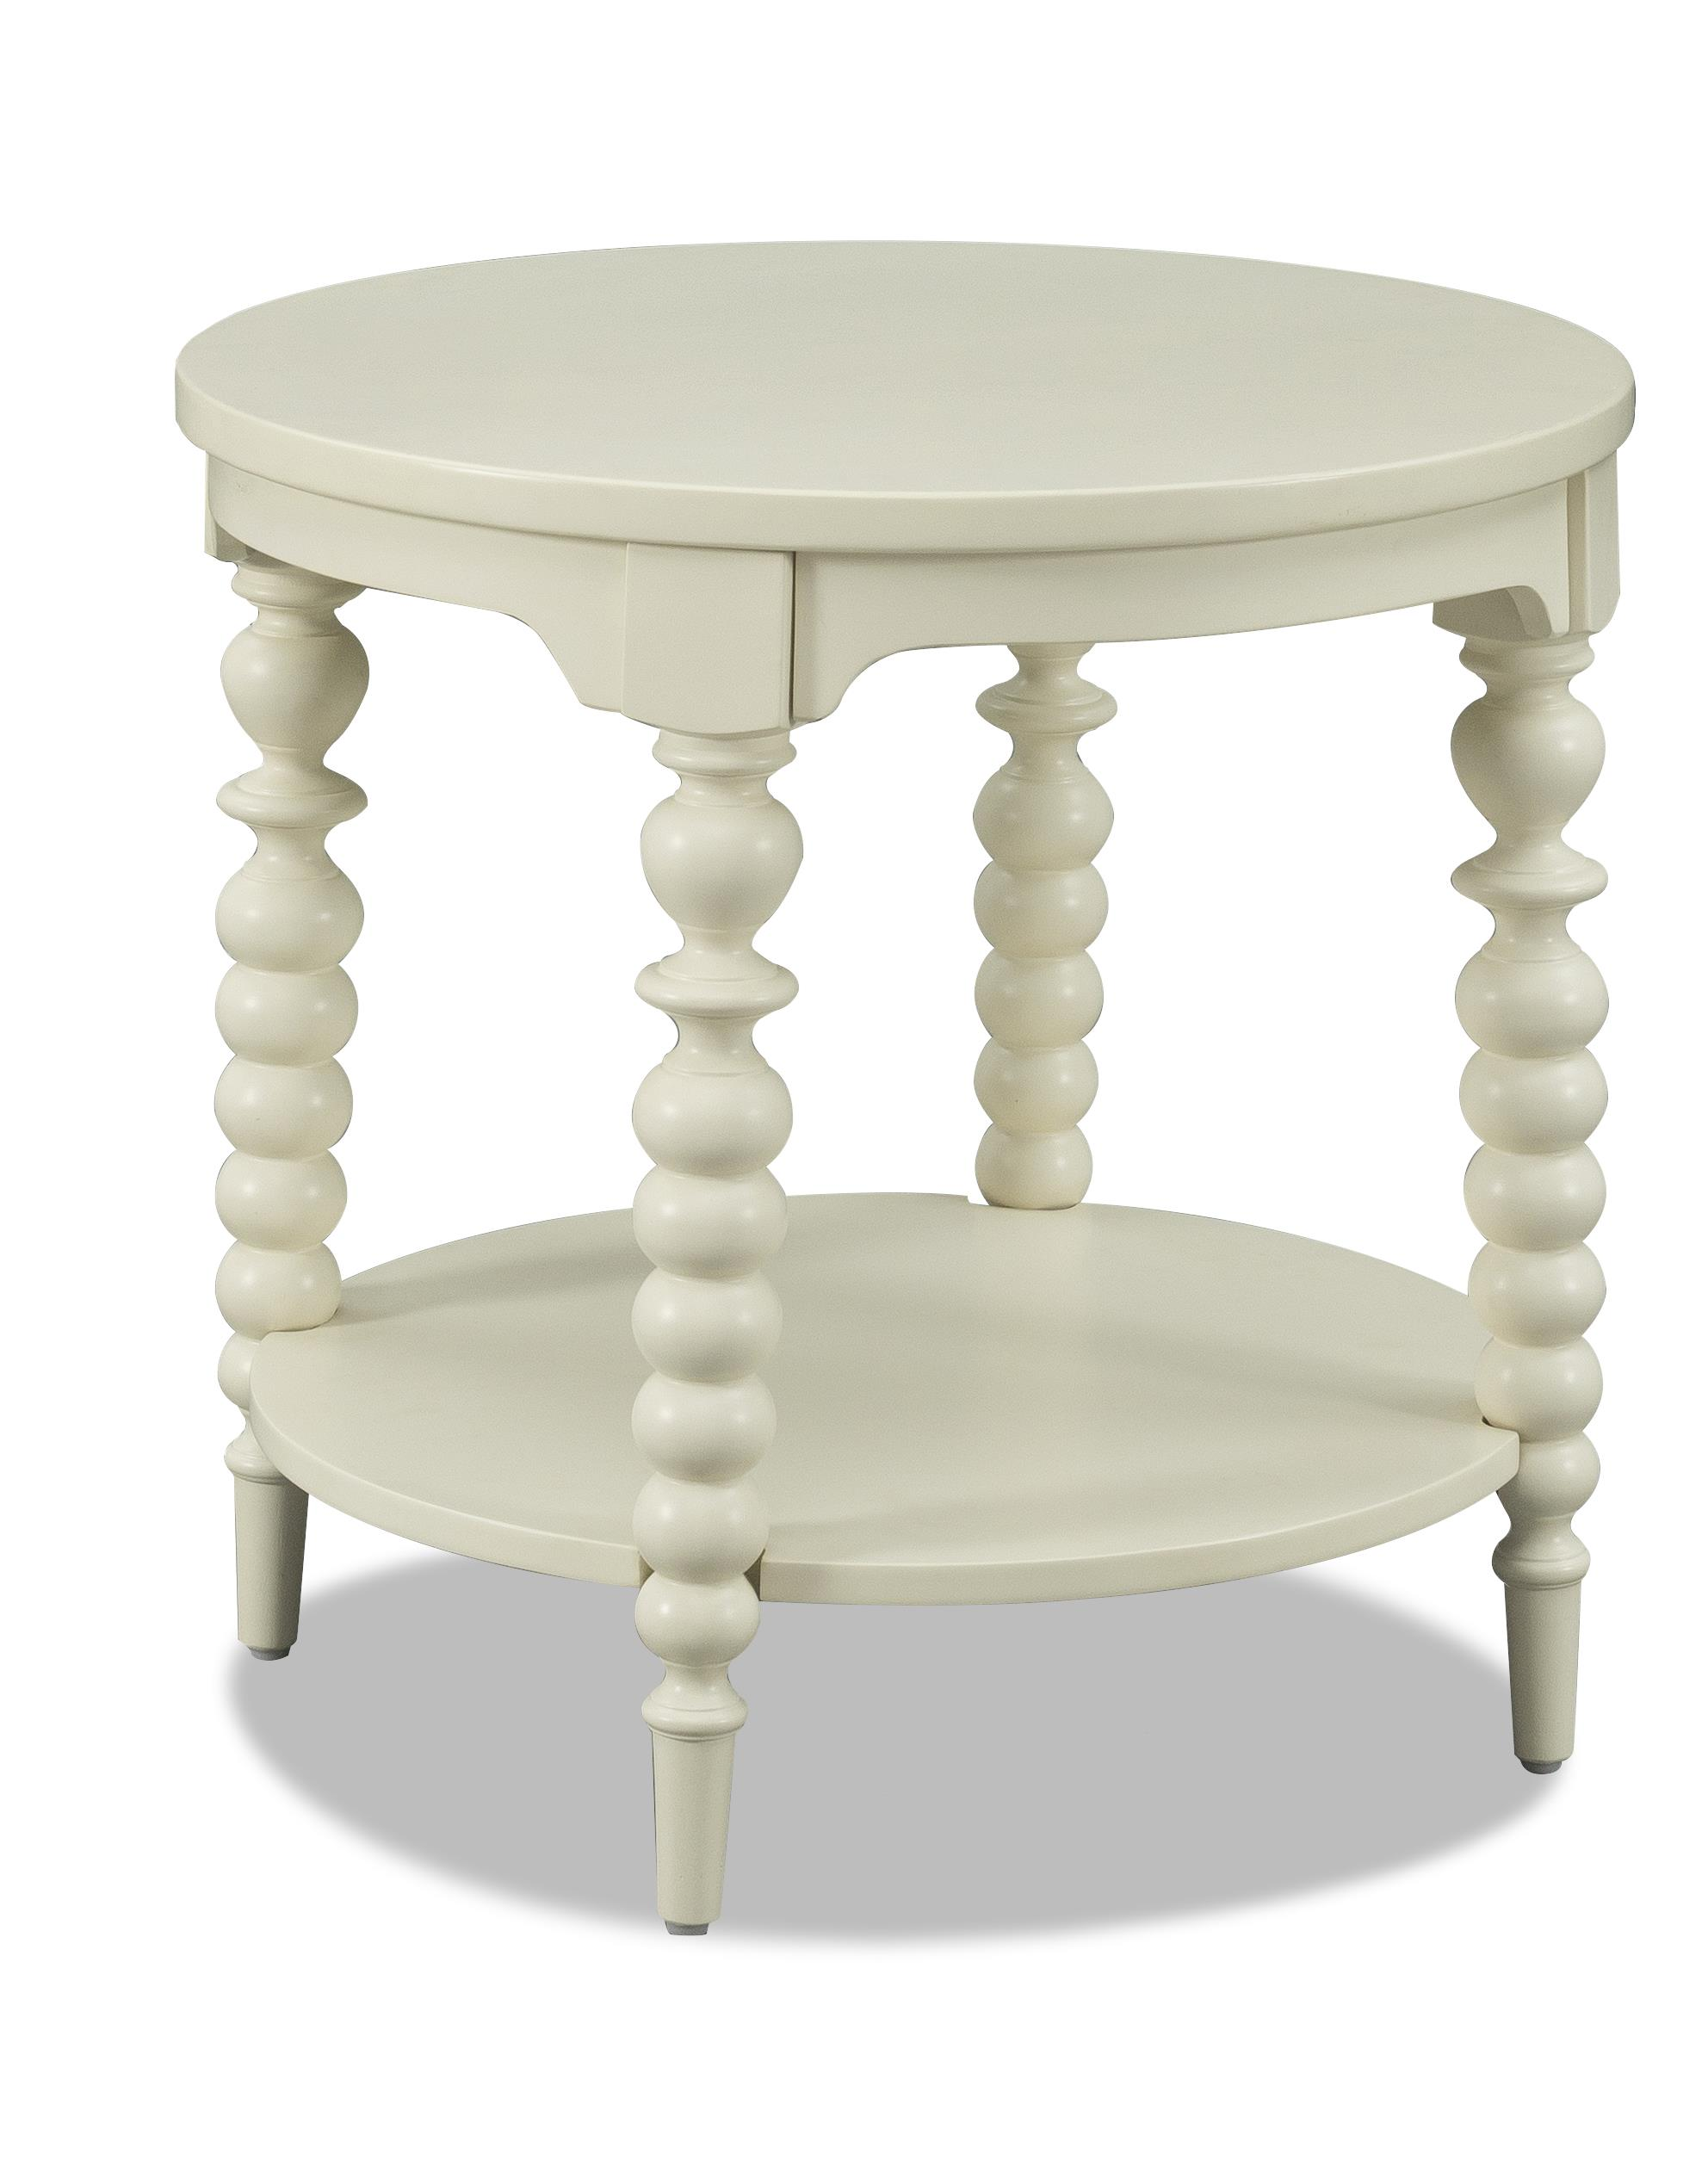 Emerson End Table by Klaussner International at Pilgrim Furniture City